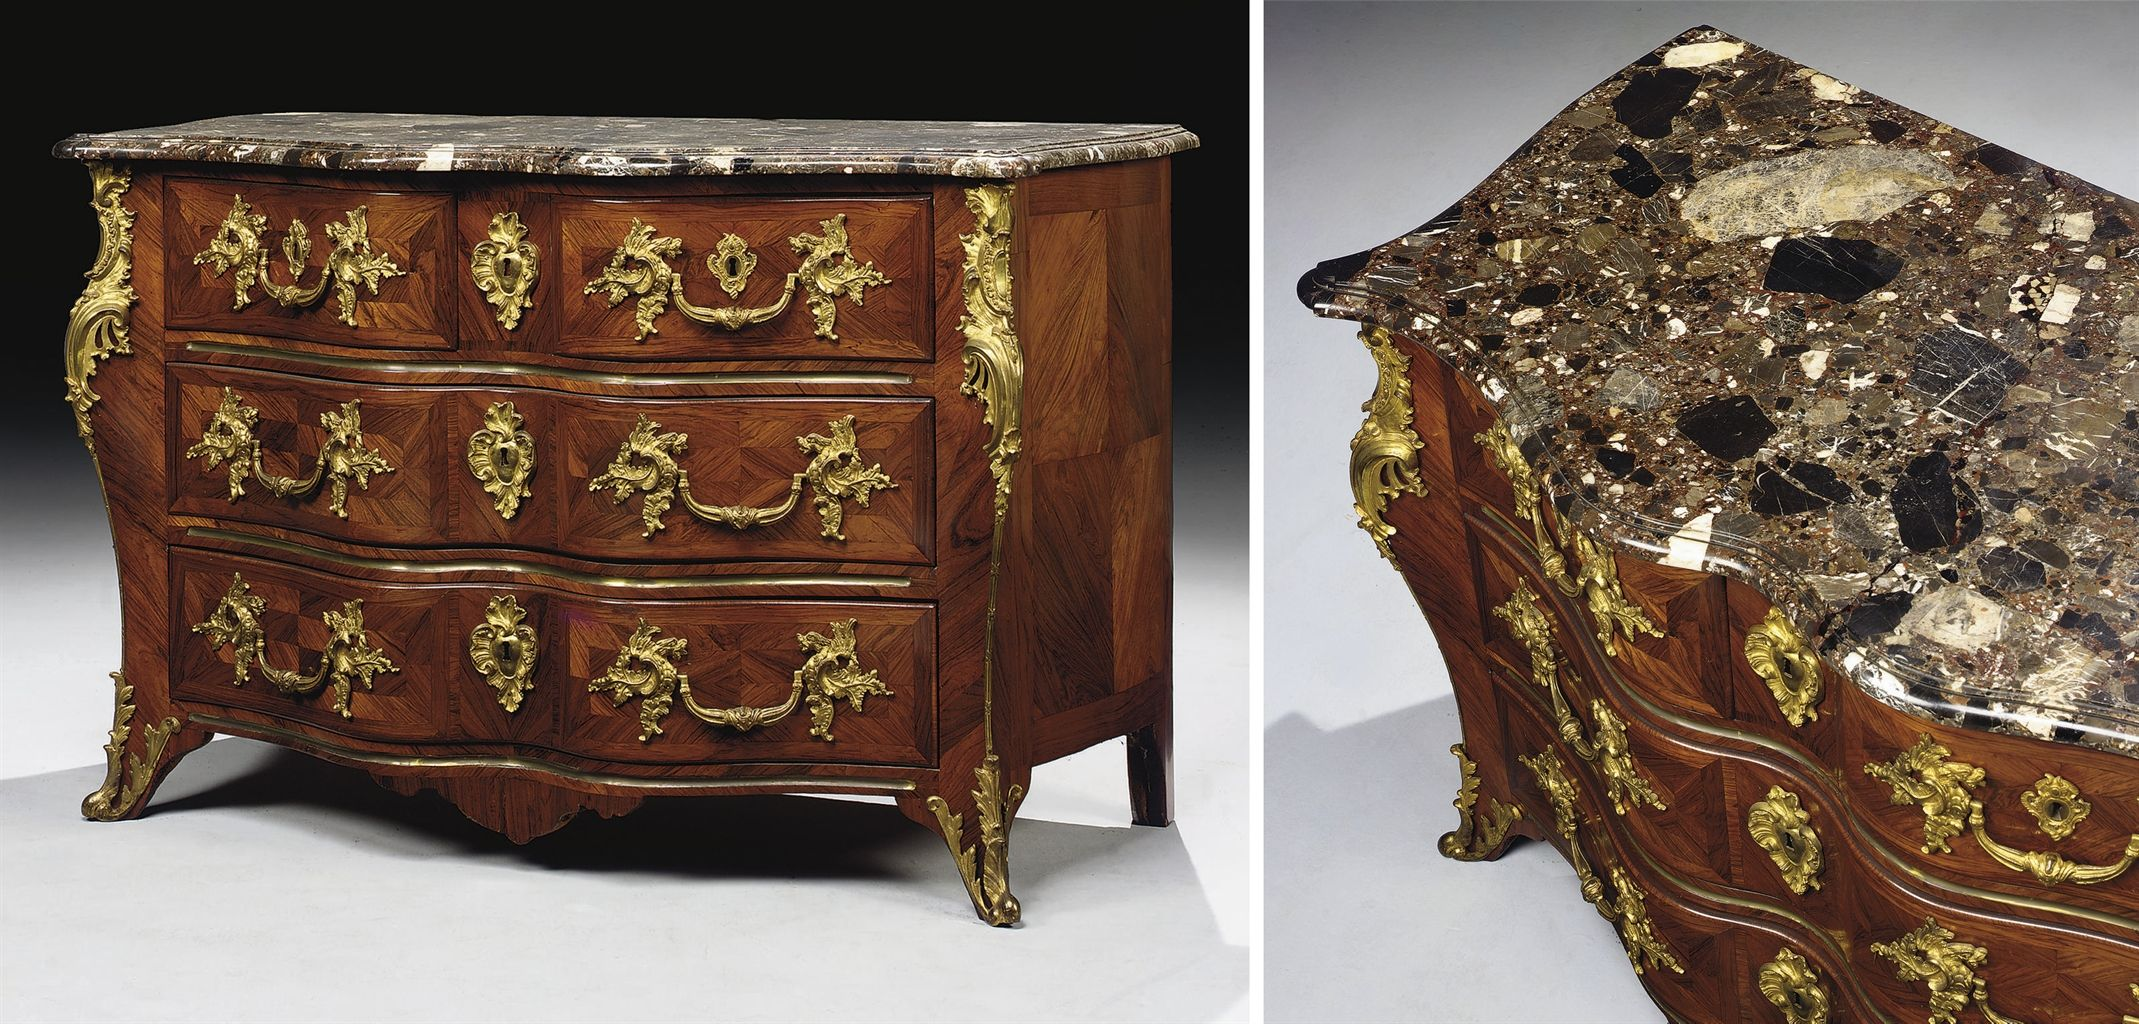 date unspecified COMMODE TOMBEAU D'EPOQUE LOUIS XV Price